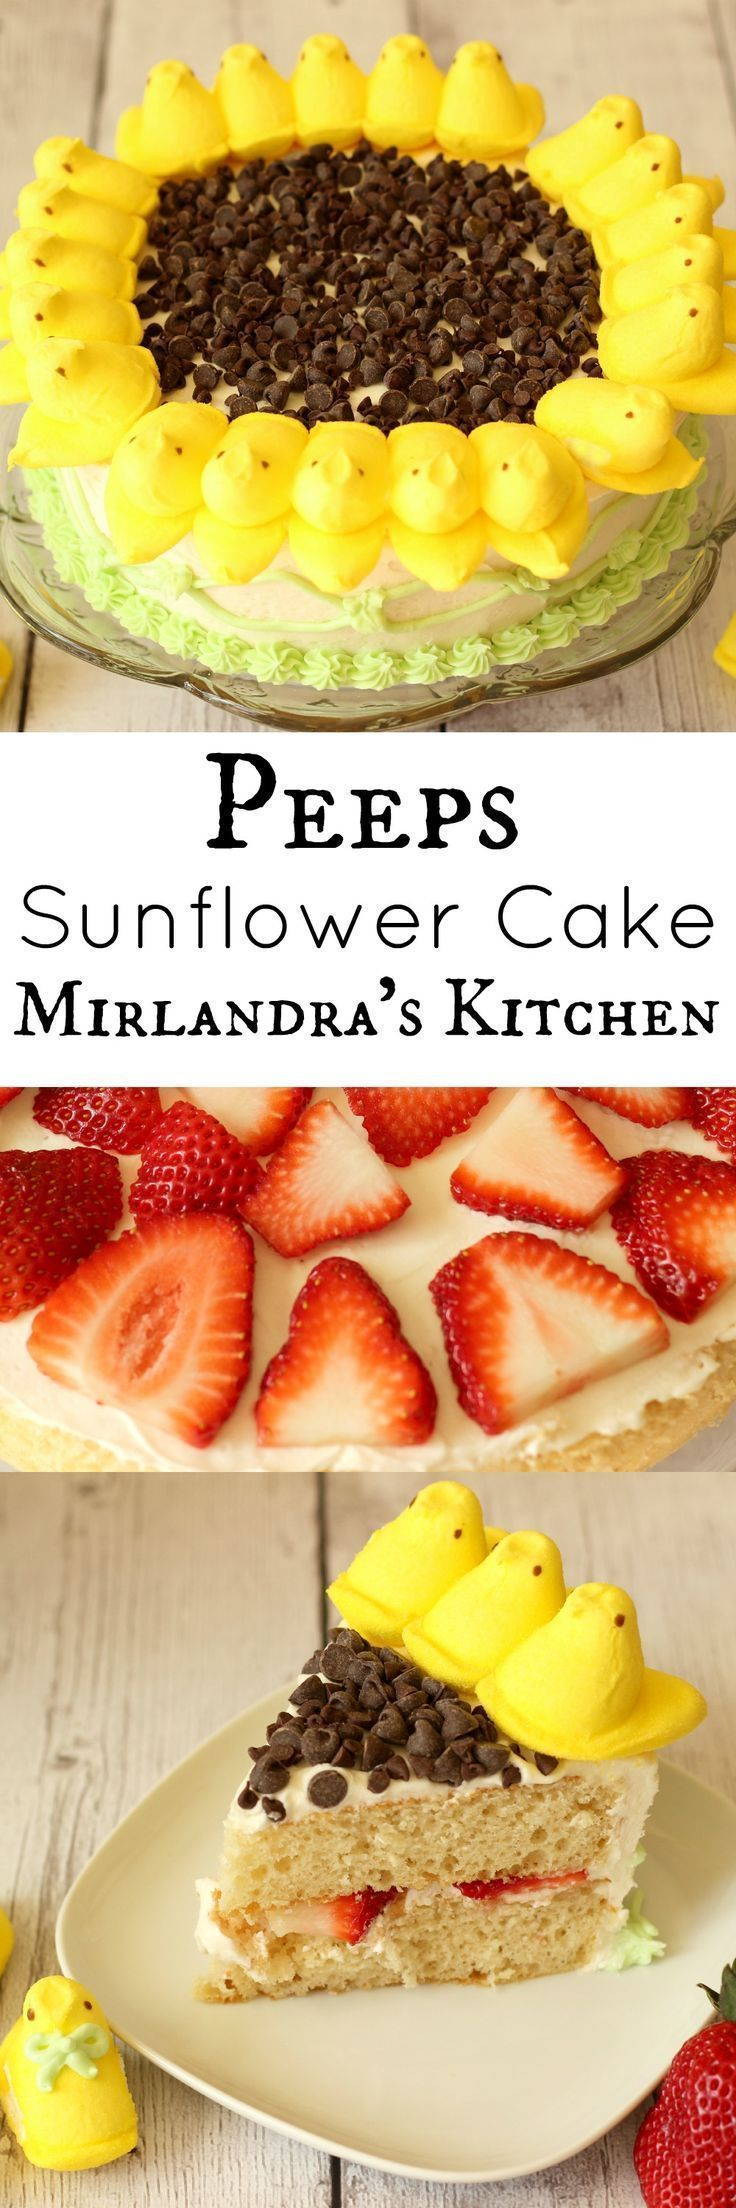 Simple instructions walk you through making a Peeps Sunflower Cake with citrus scented vanilla buttercream frosting and fresh strawberry filling.  The decorating process takes about 30 minutes if you make the frosting pattern on the side.  This is a fun s